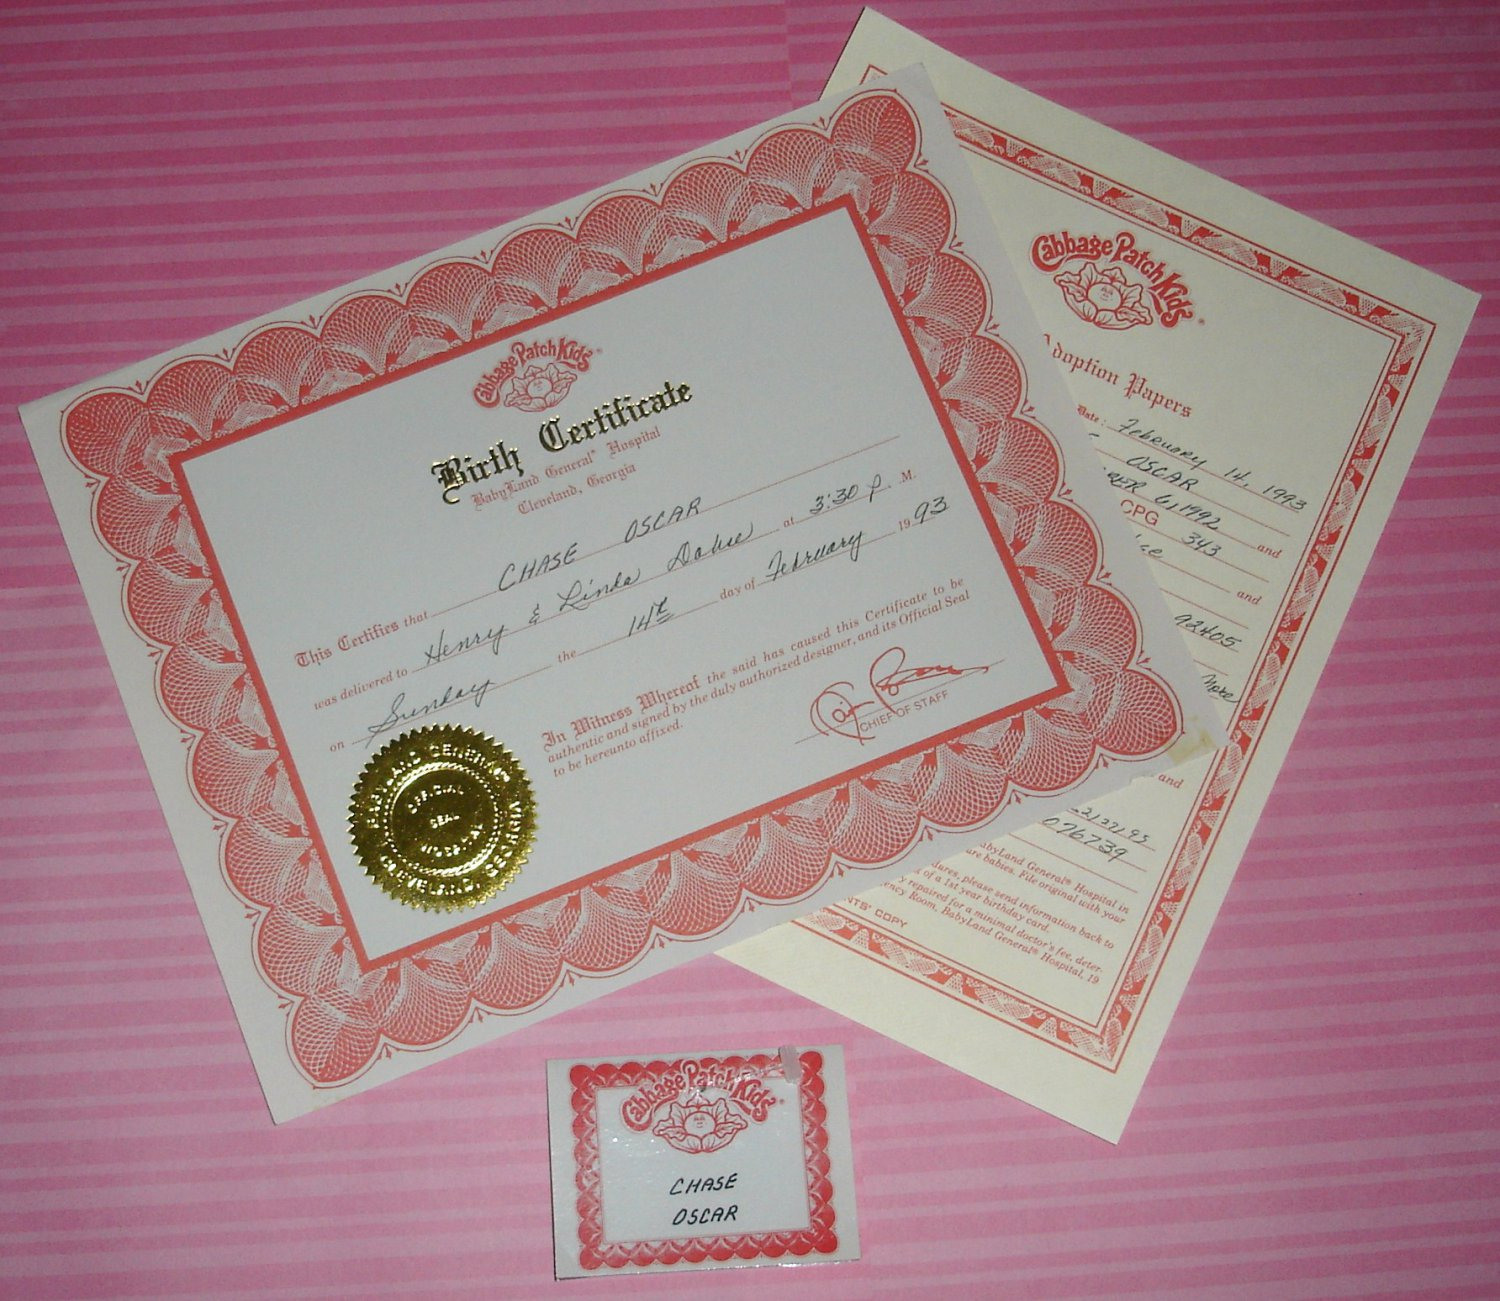 Cabbage patch soft sculpture doll platinum birth certificate lot chase oscar cpg 343 for Cabbage patch doll birth certificate